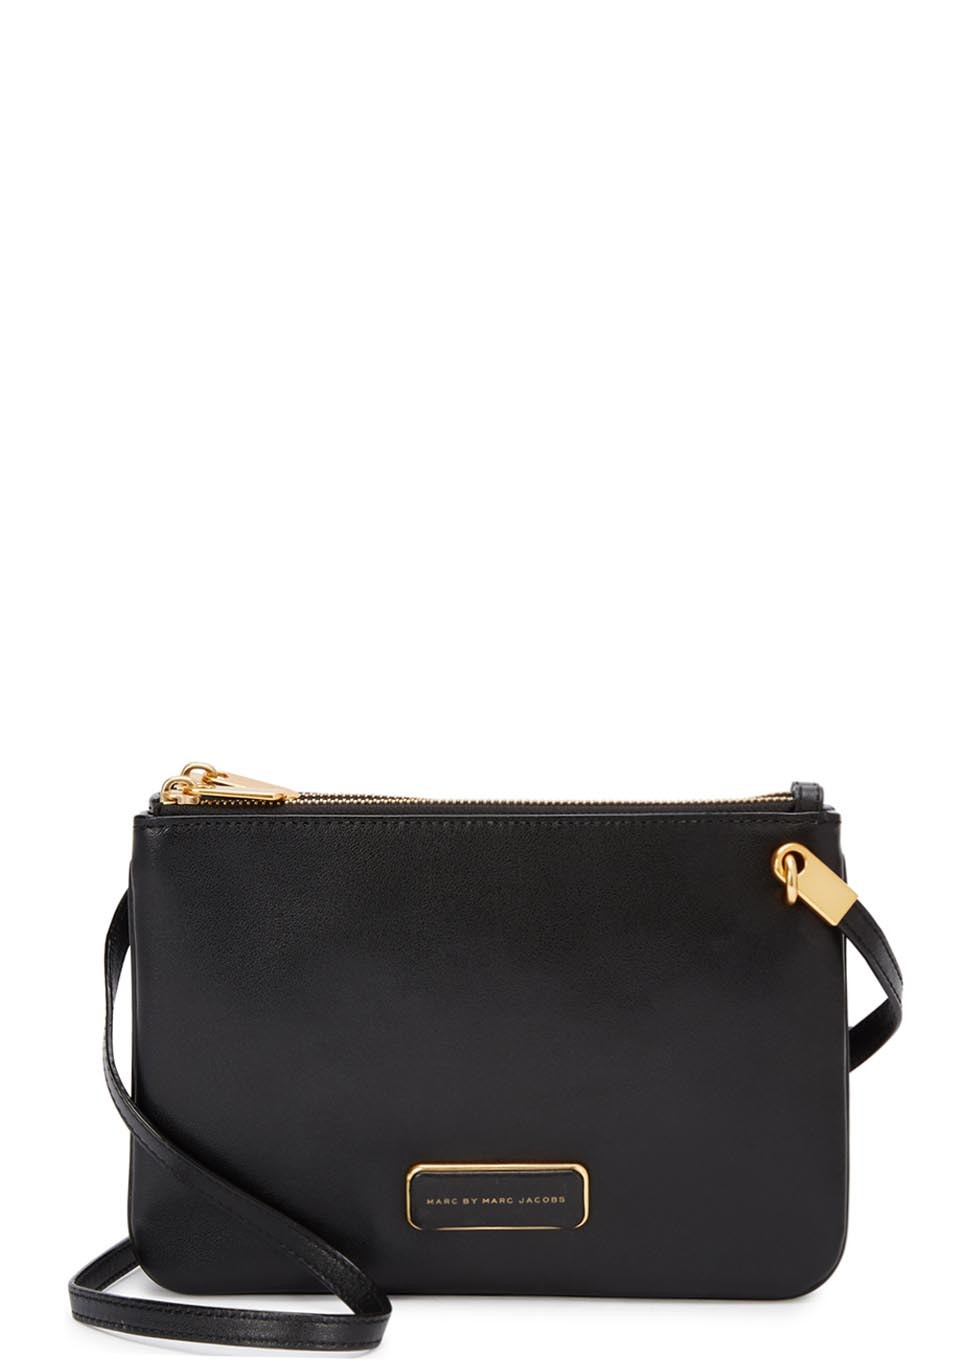 Ligero Percy Black Cross Body Bag - predominant colour: black; occasions: casual, work, creative work; style: messenger; length: across body/long; size: standard; material: leather; pattern: plain; finish: plain; season: a/w 2015; wardrobe: basic